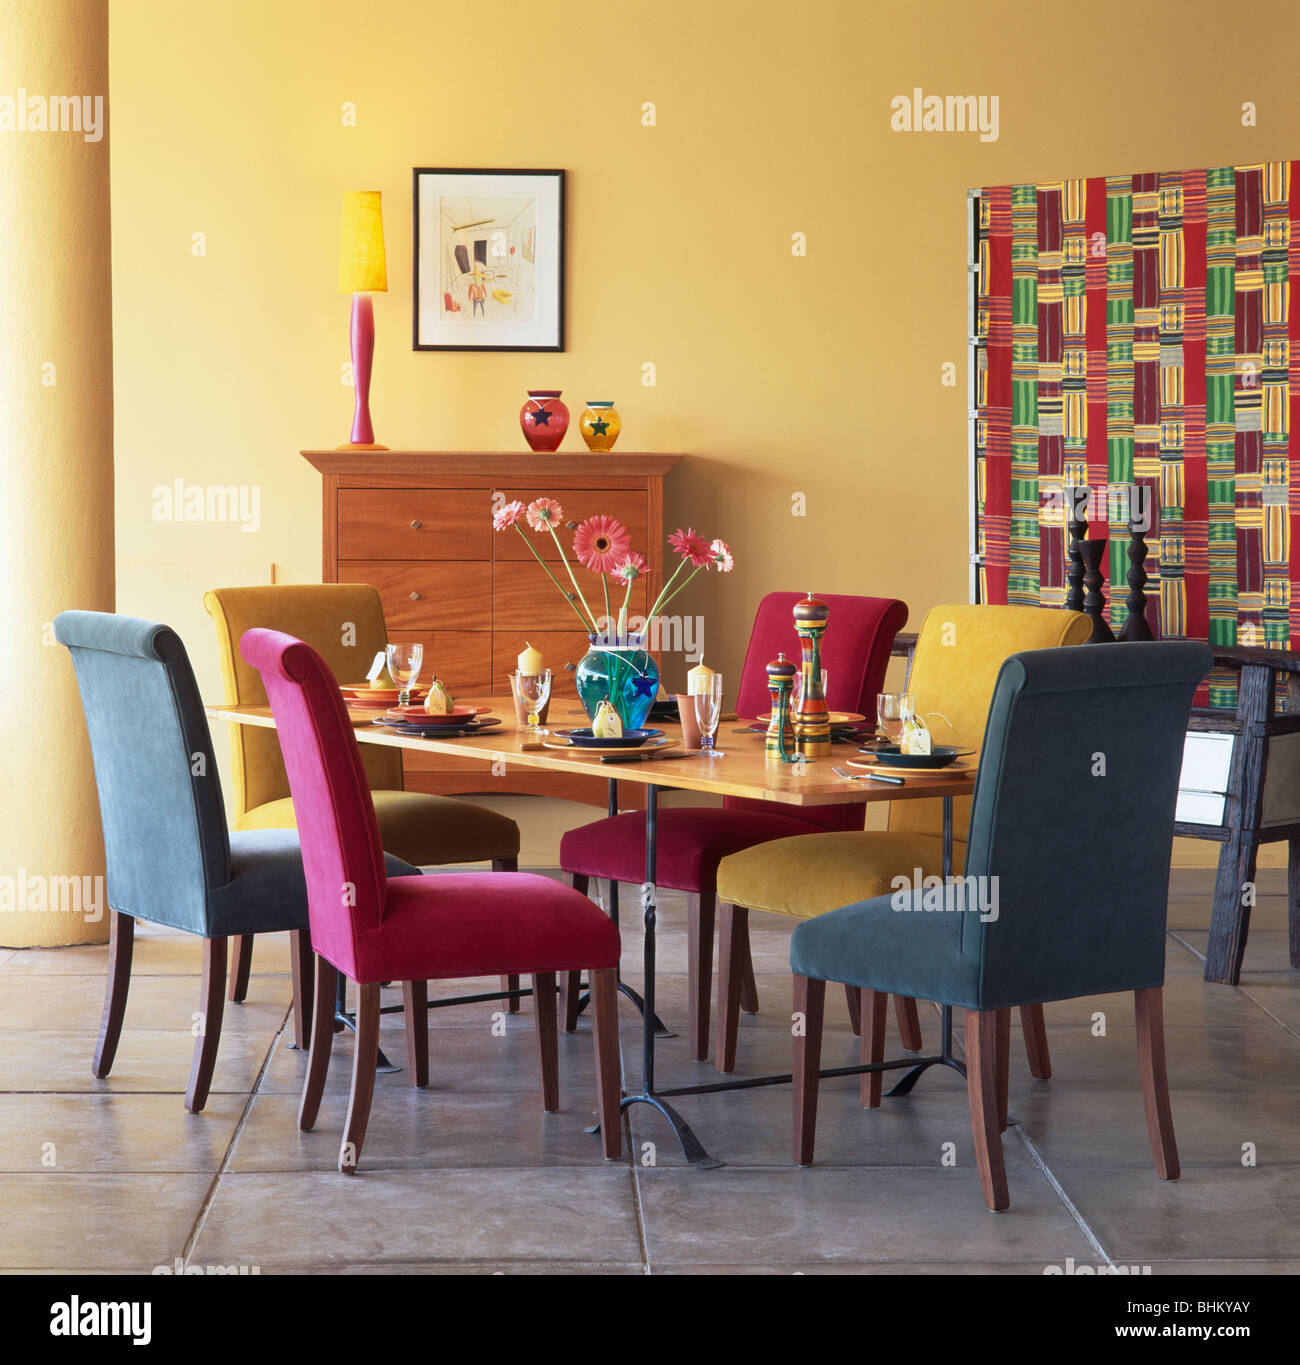 Pink Turquoise And Blue Velour Upholstered Dining Chairs At Table In Stock Photo Alamy